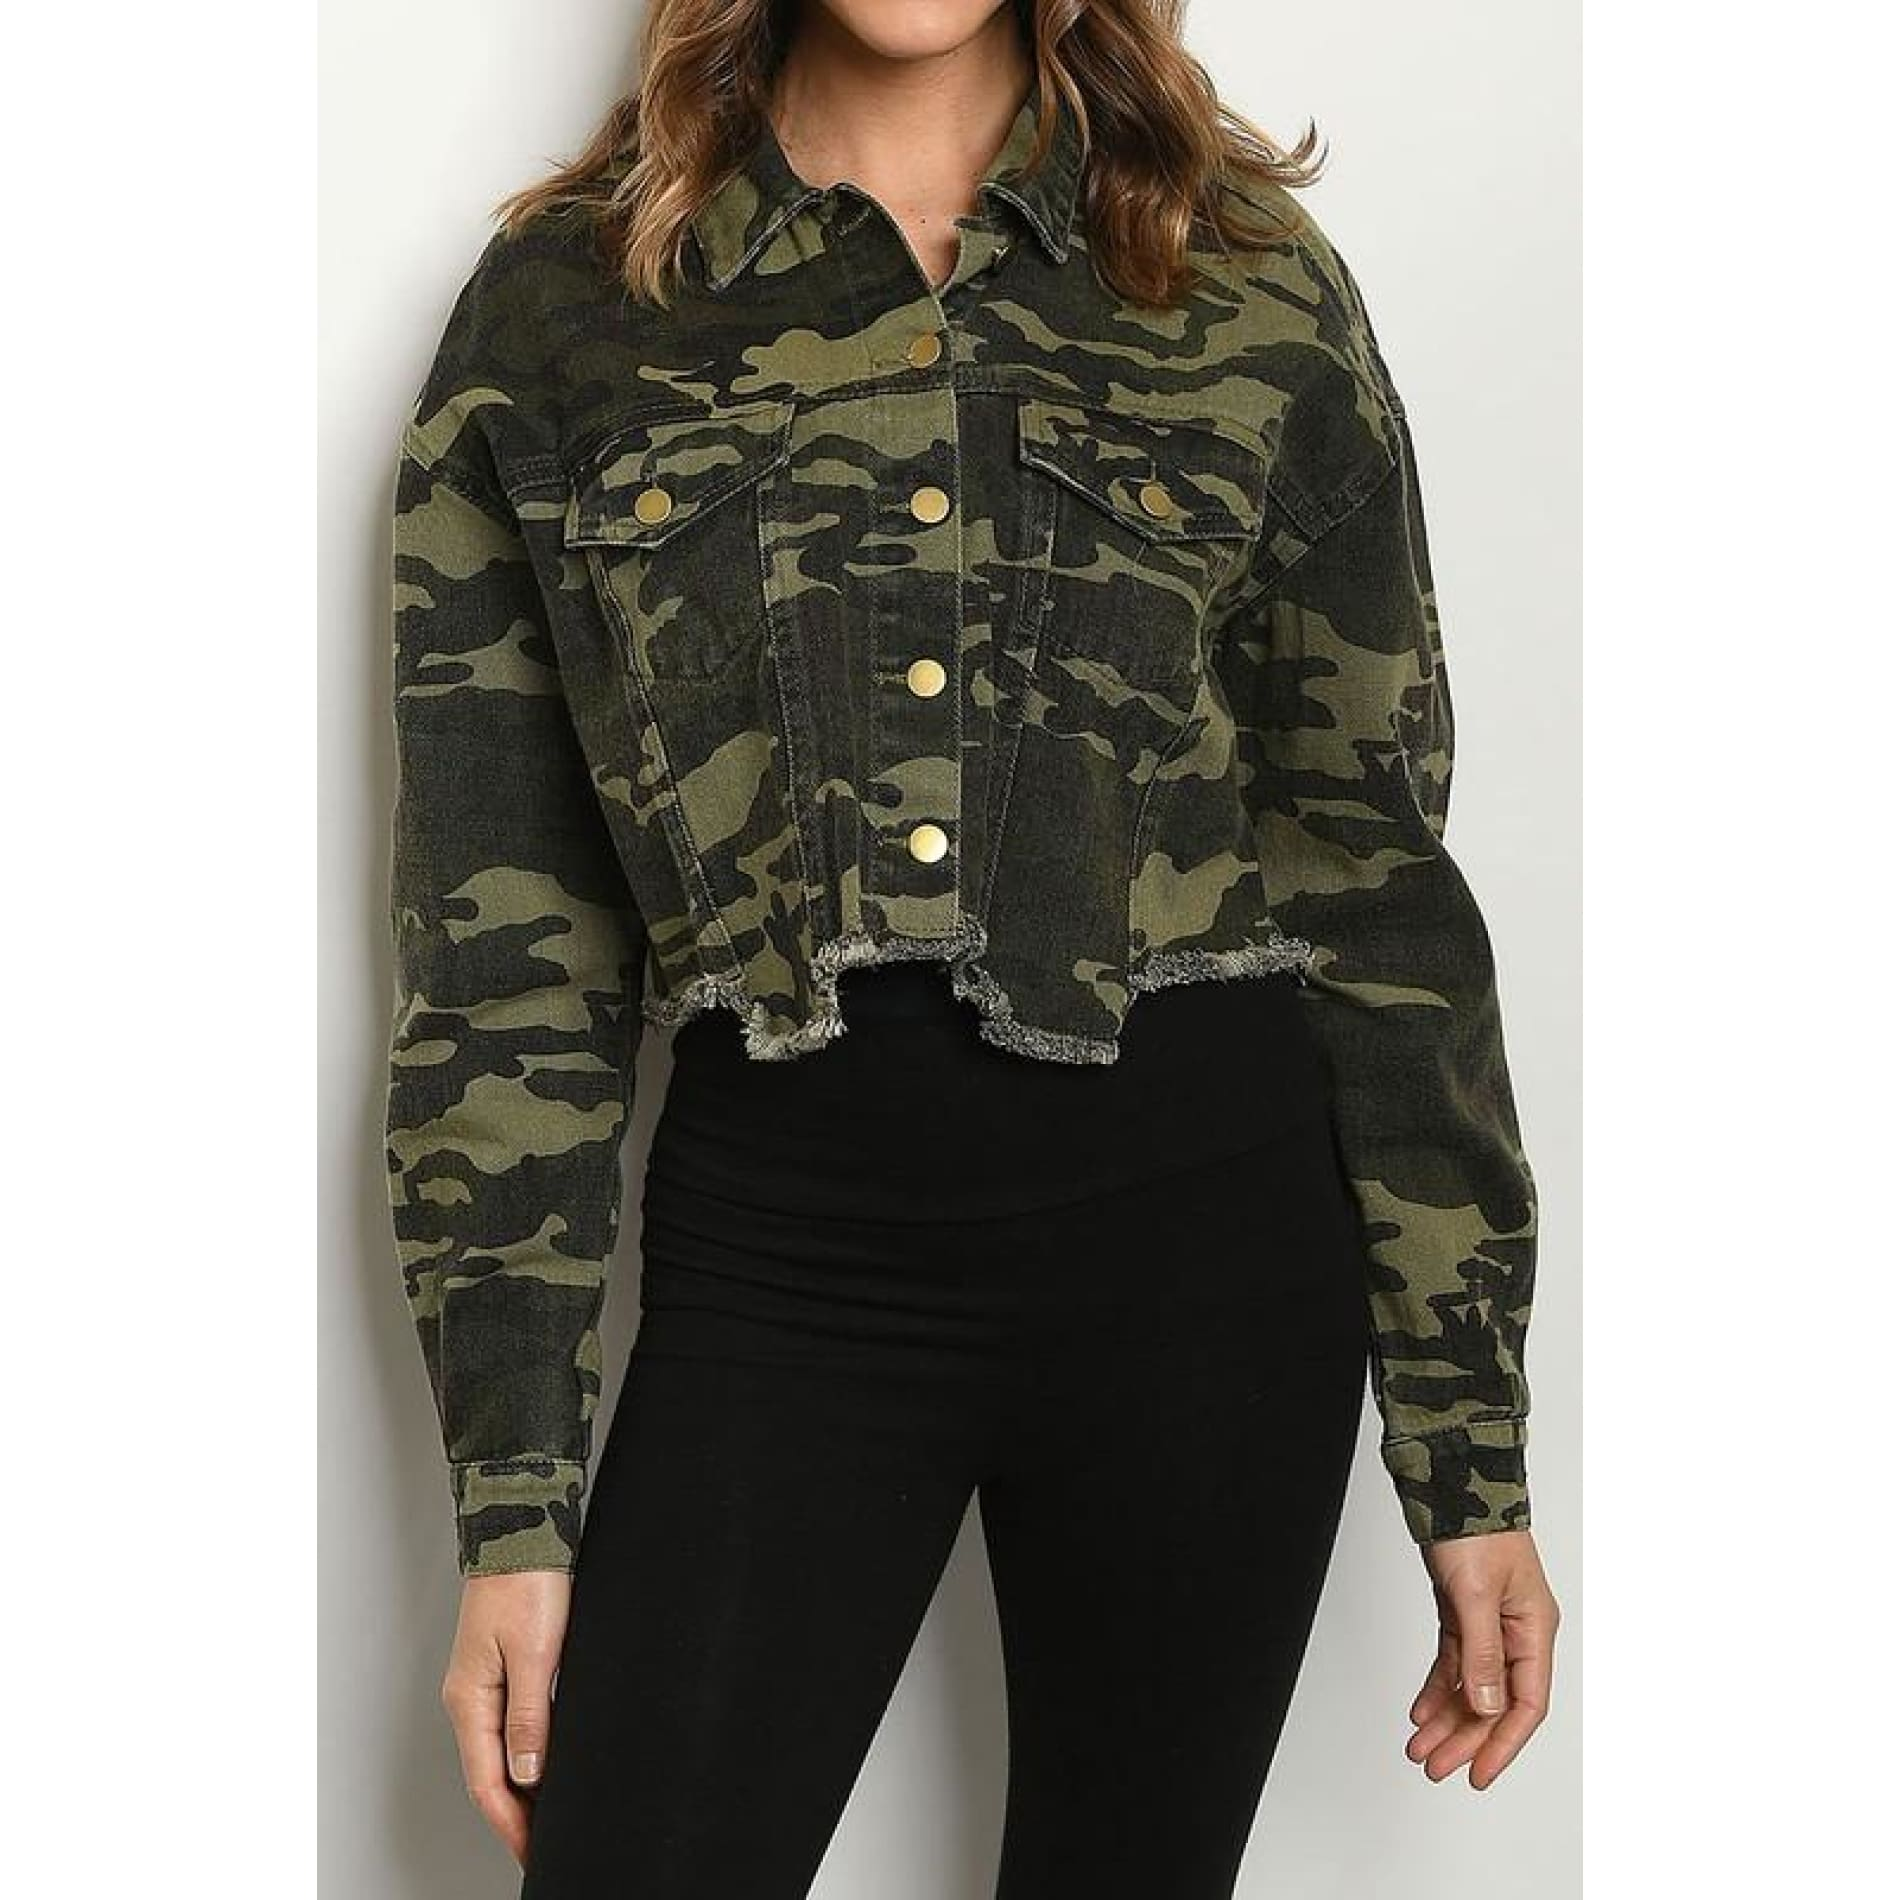 Camo Crop Denim Jacket - Jacket